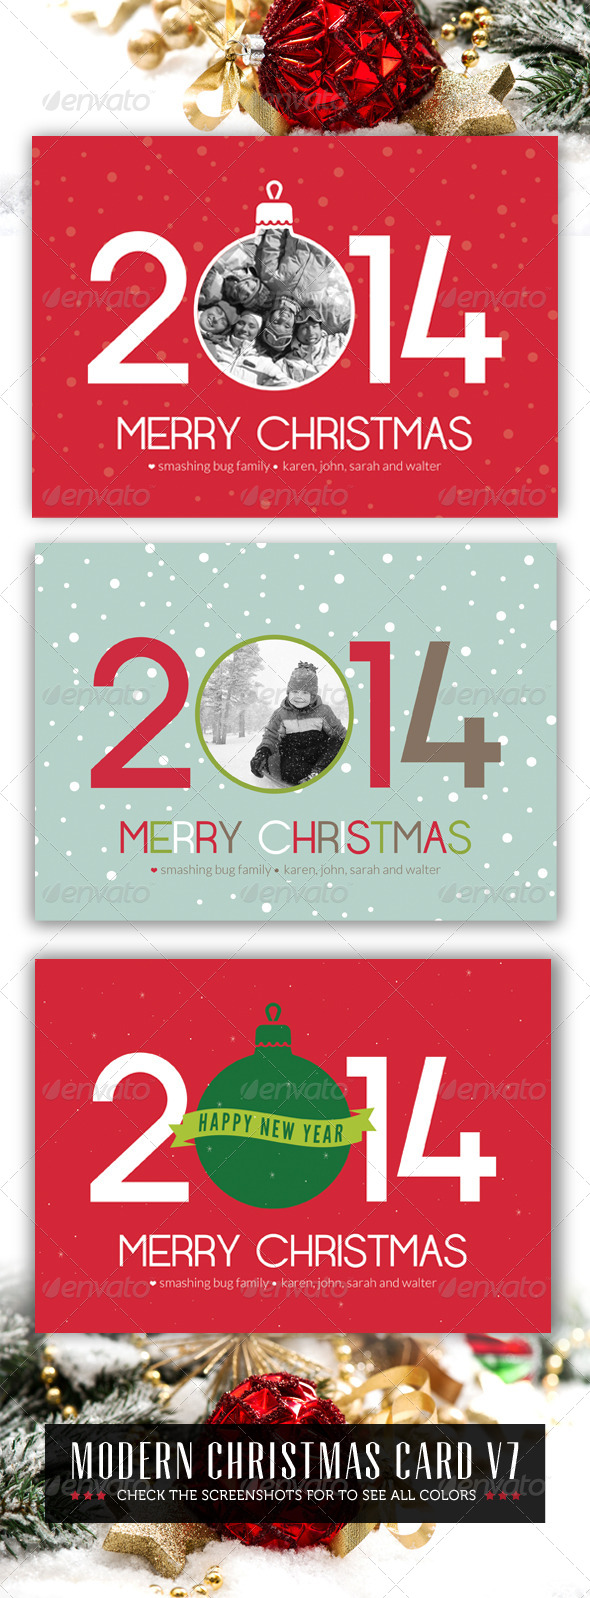 Modern Christmas Card V8 - Holiday Greeting Cards